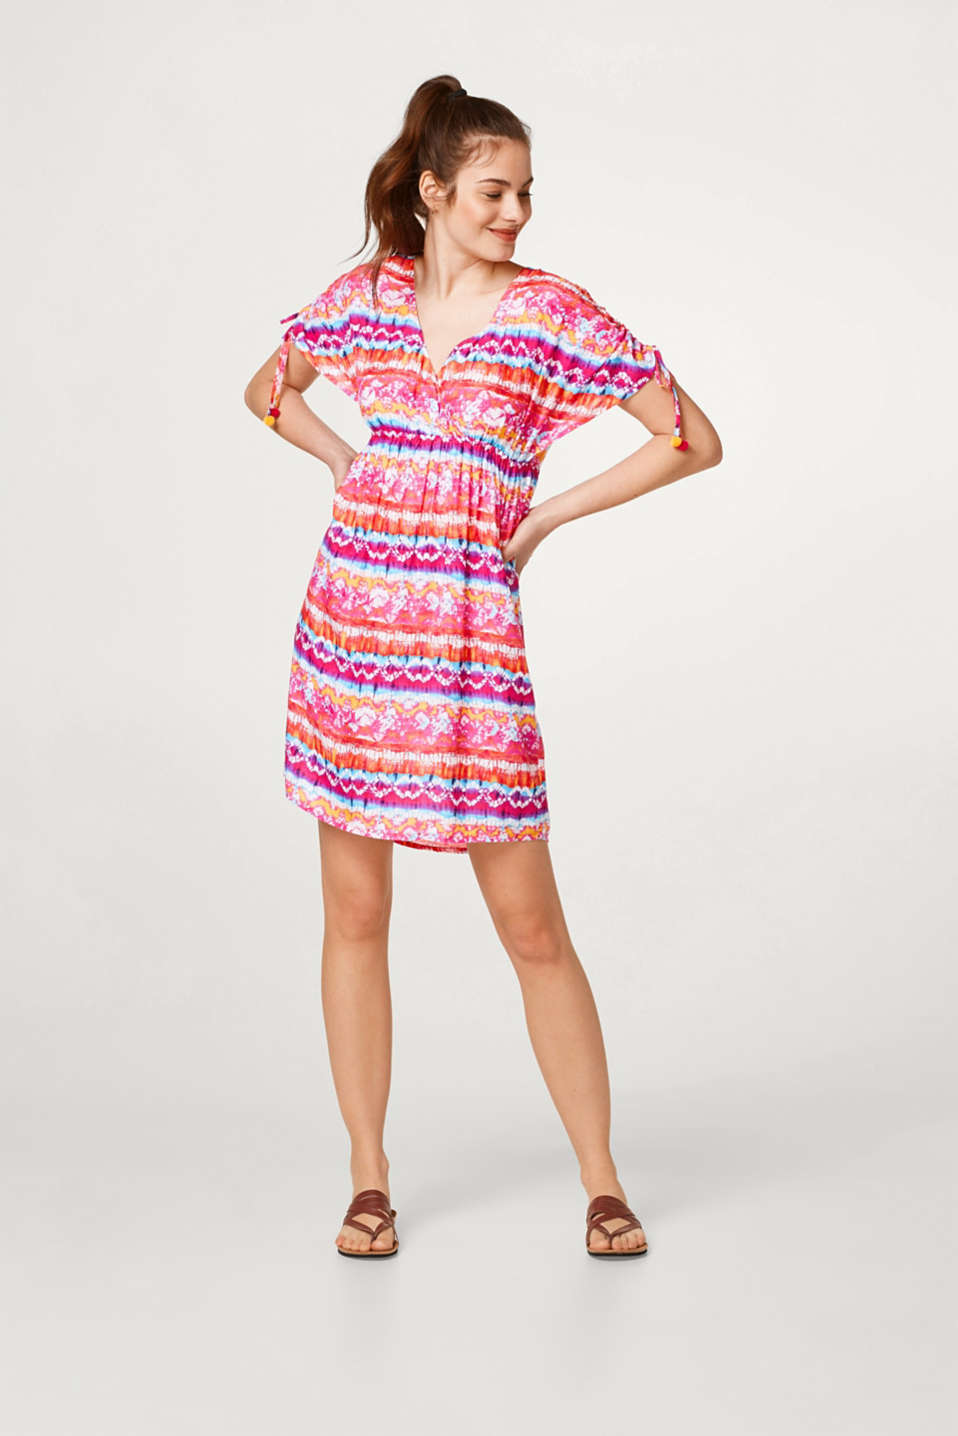 Esprit - Light and airy beach dress with a colourful print